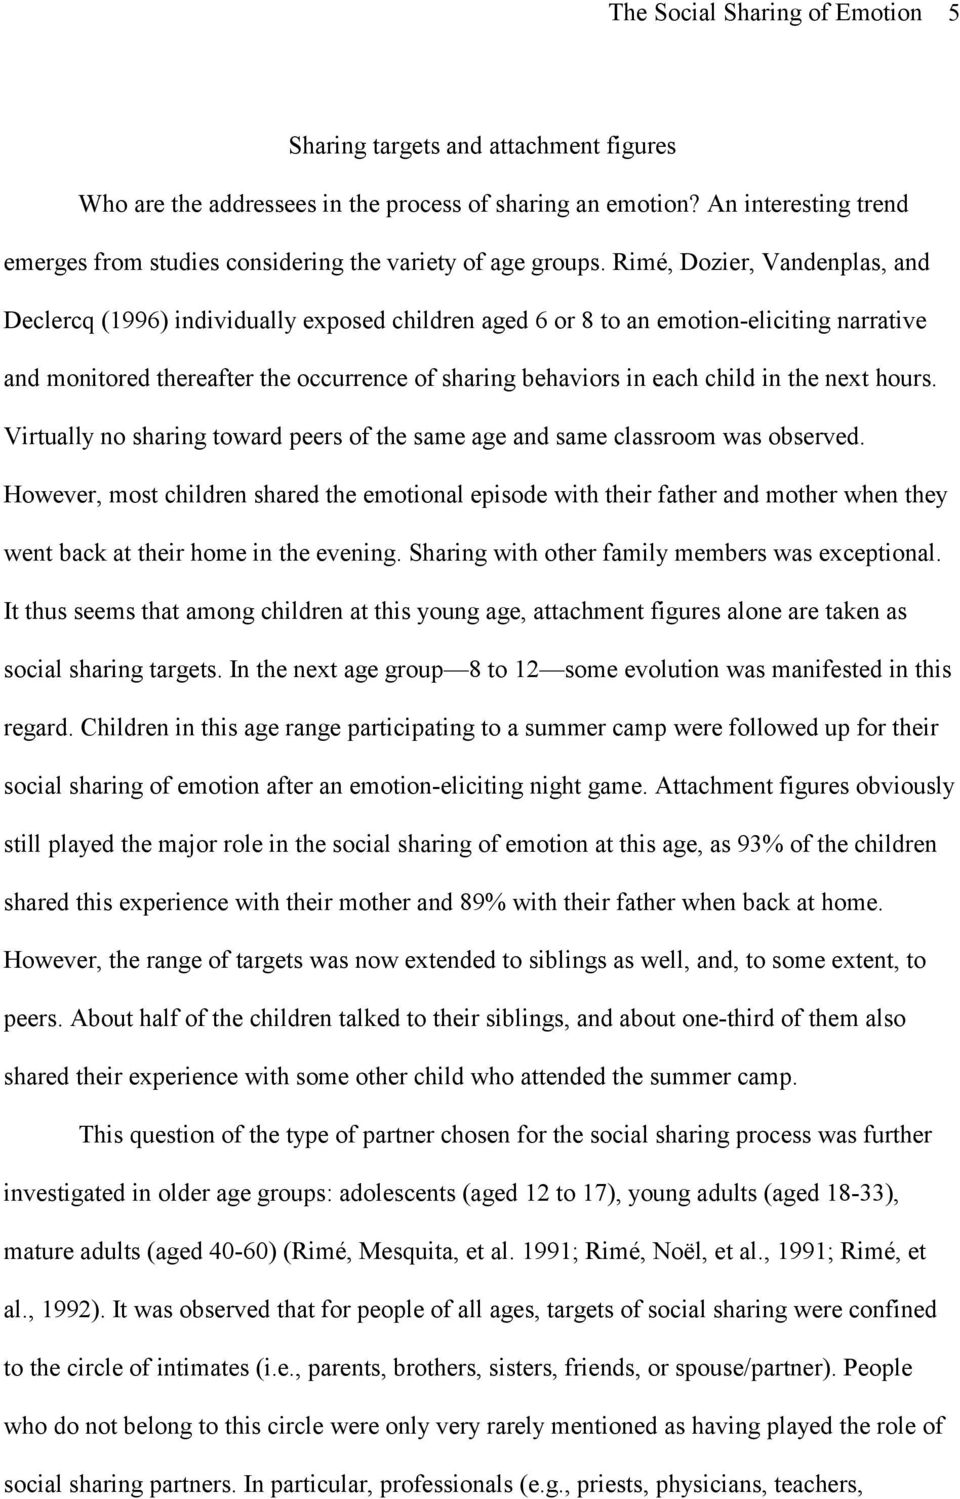 Rimé, Dozier, Vandenplas, and Declercq (1996) individually exposed children aged 6 or 8 to an emotion-eliciting narrative and monitored thereafter the occurrence of sharing behaviors in each child in